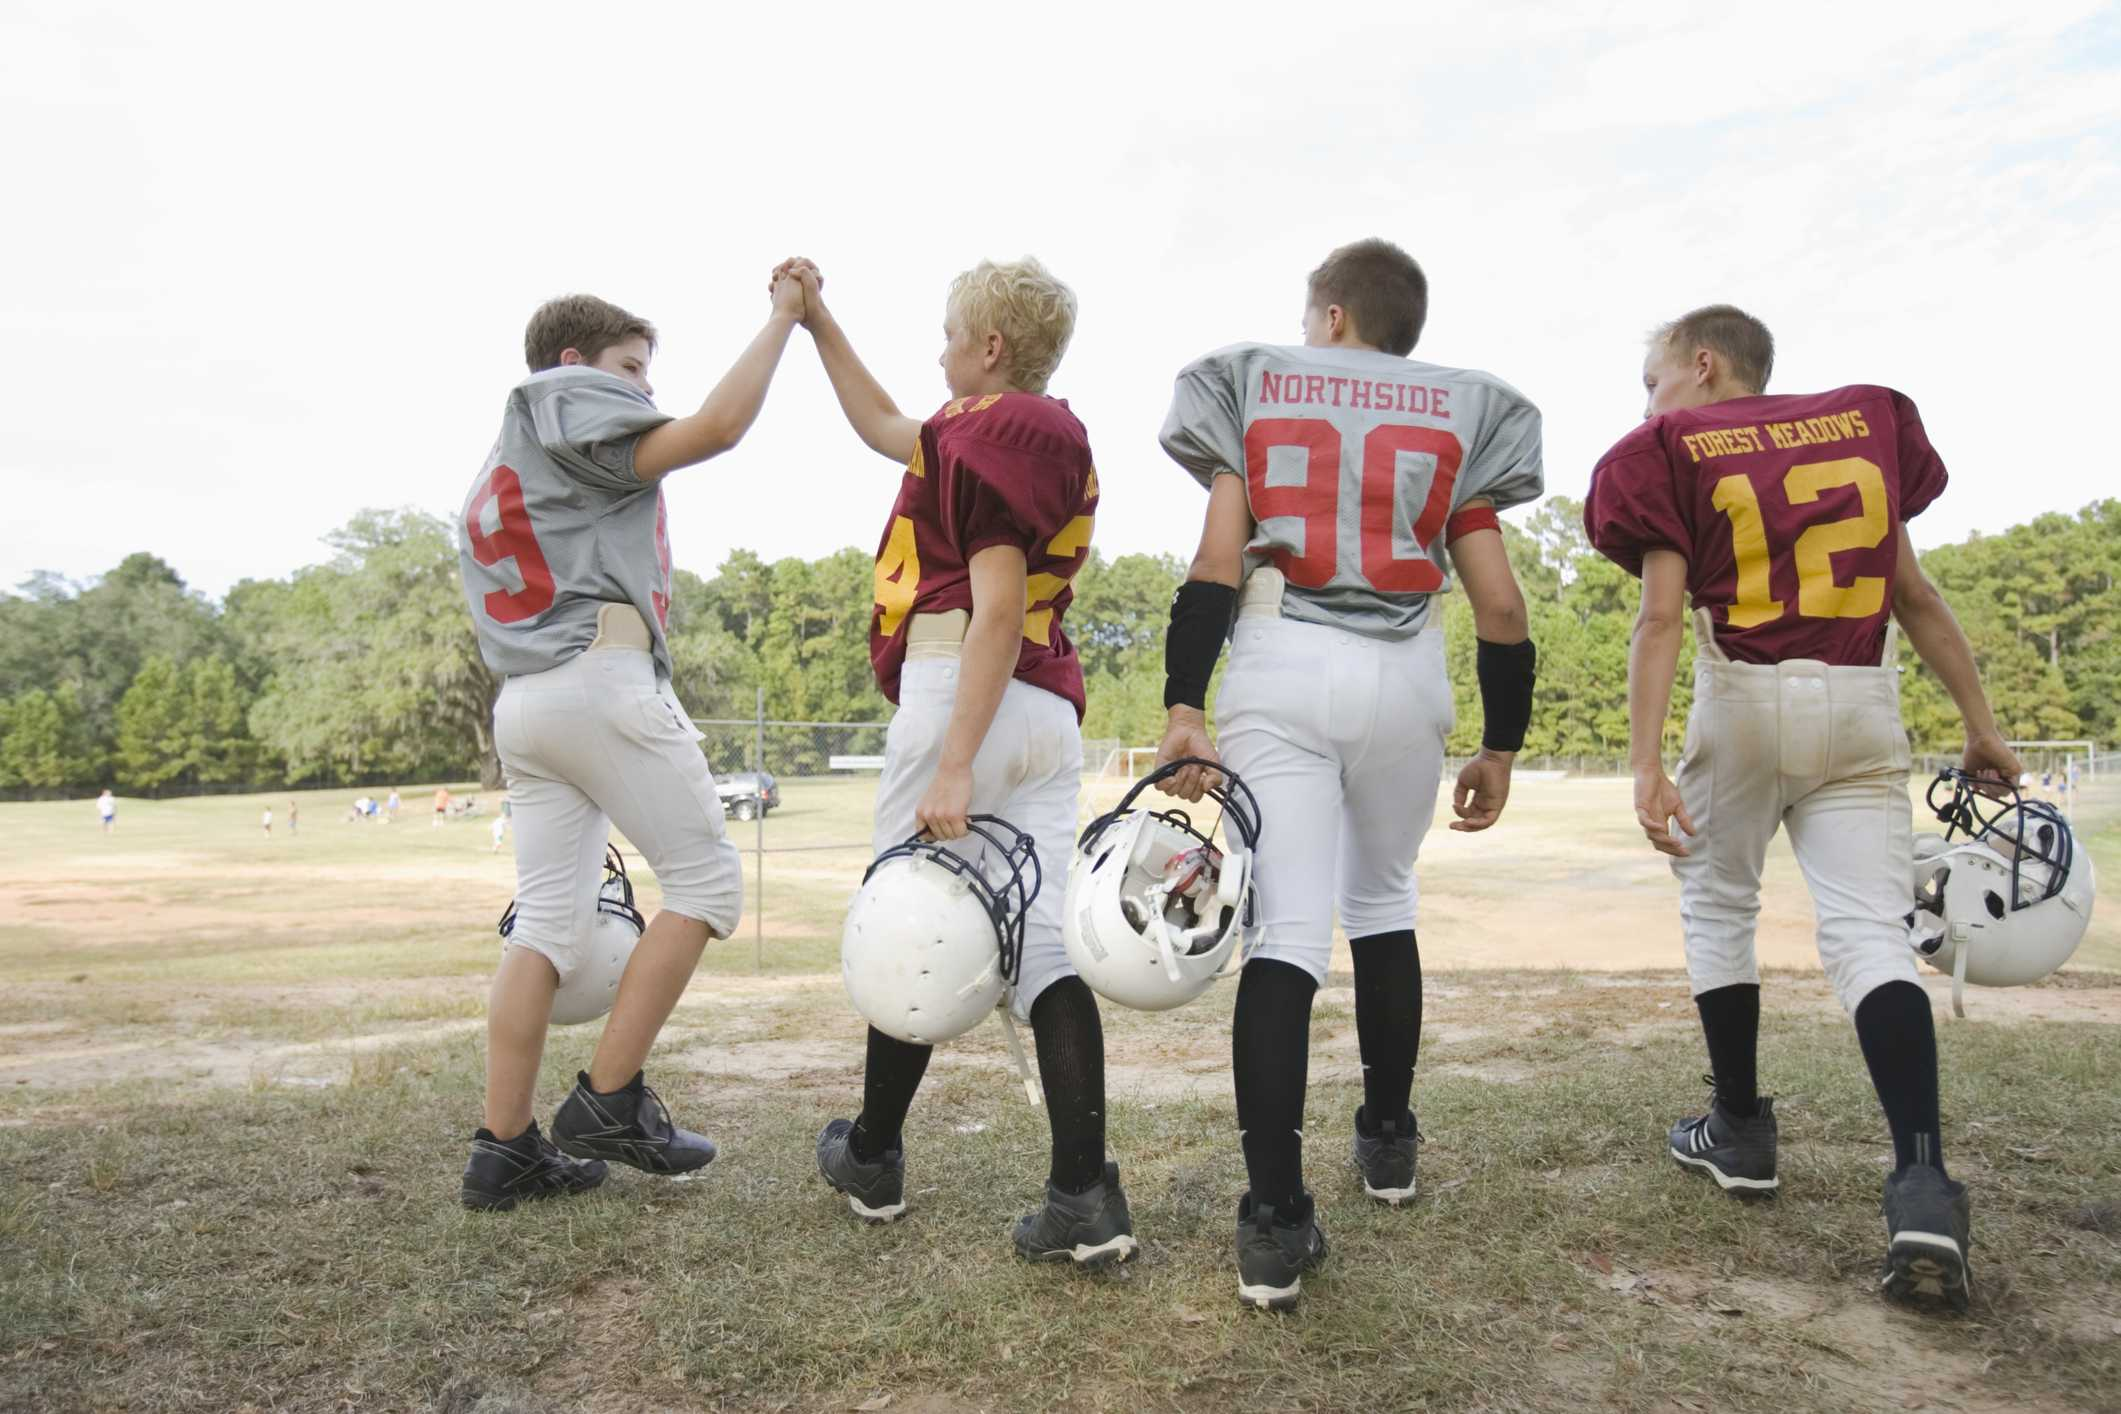 Doctor Warns Parents Not to Let Kids Play These 6 Sports